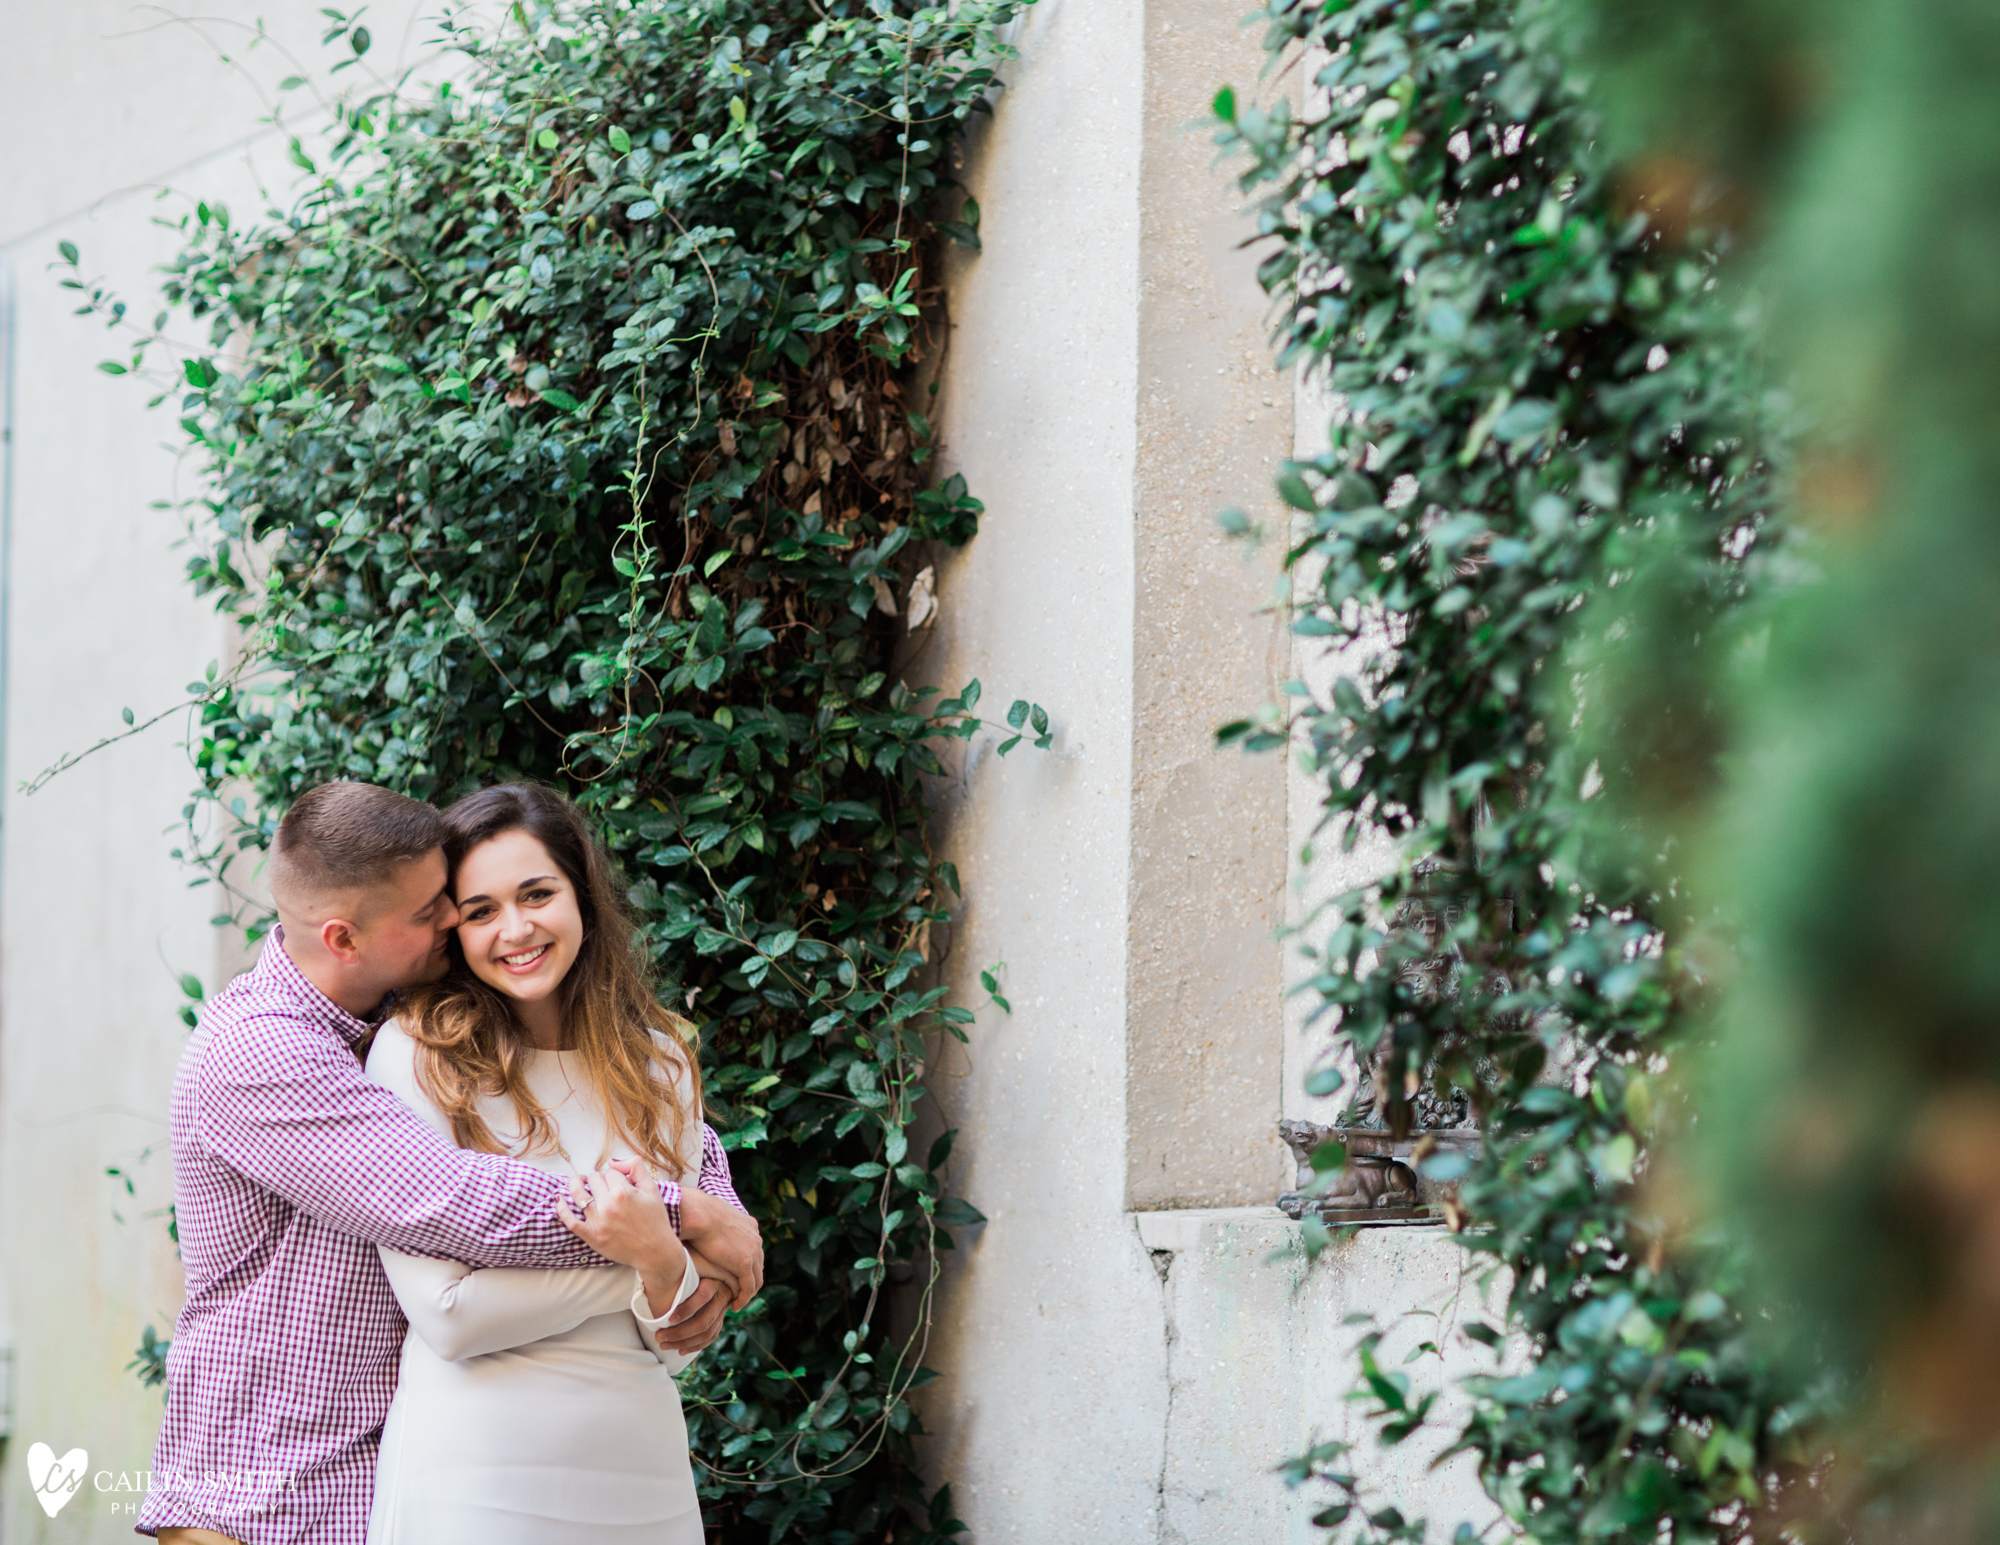 Meaghan_Chase_St_Augustine_Nights_of_Lights_Engagement_Photography_07.jpg